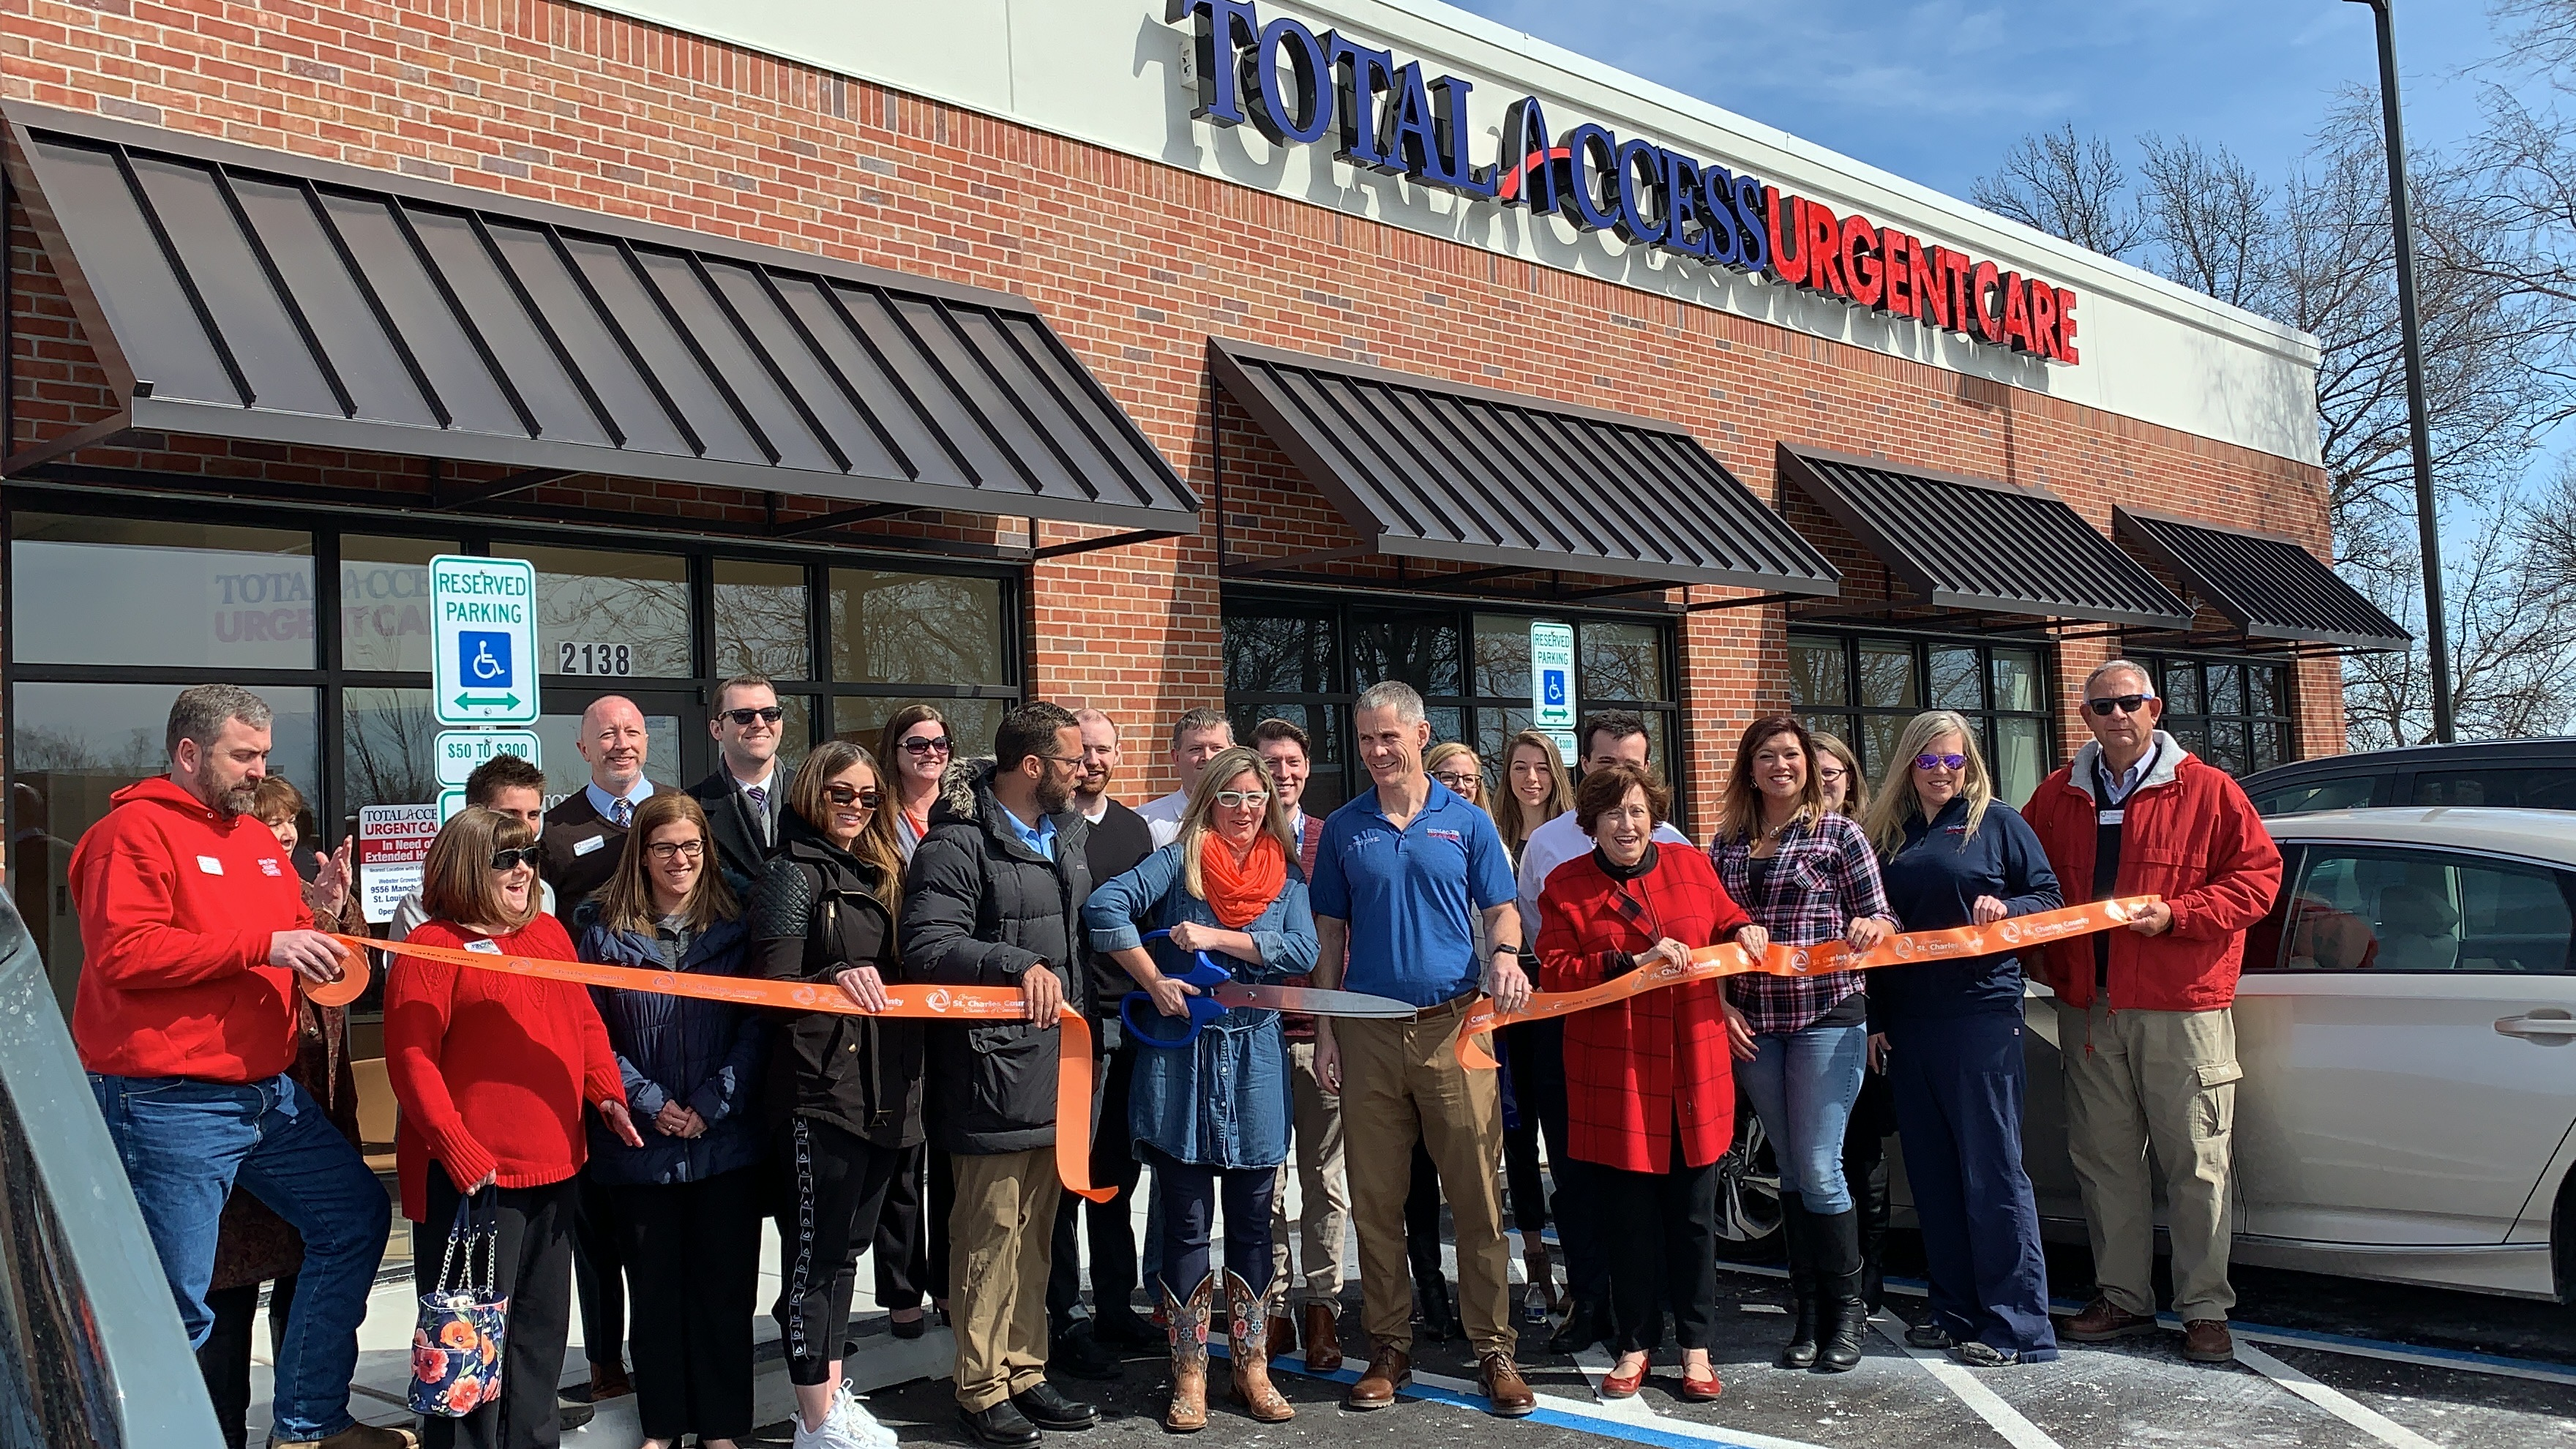 Total Access Urgent Care Celebrates Grand Opening with Ribbon Cutting